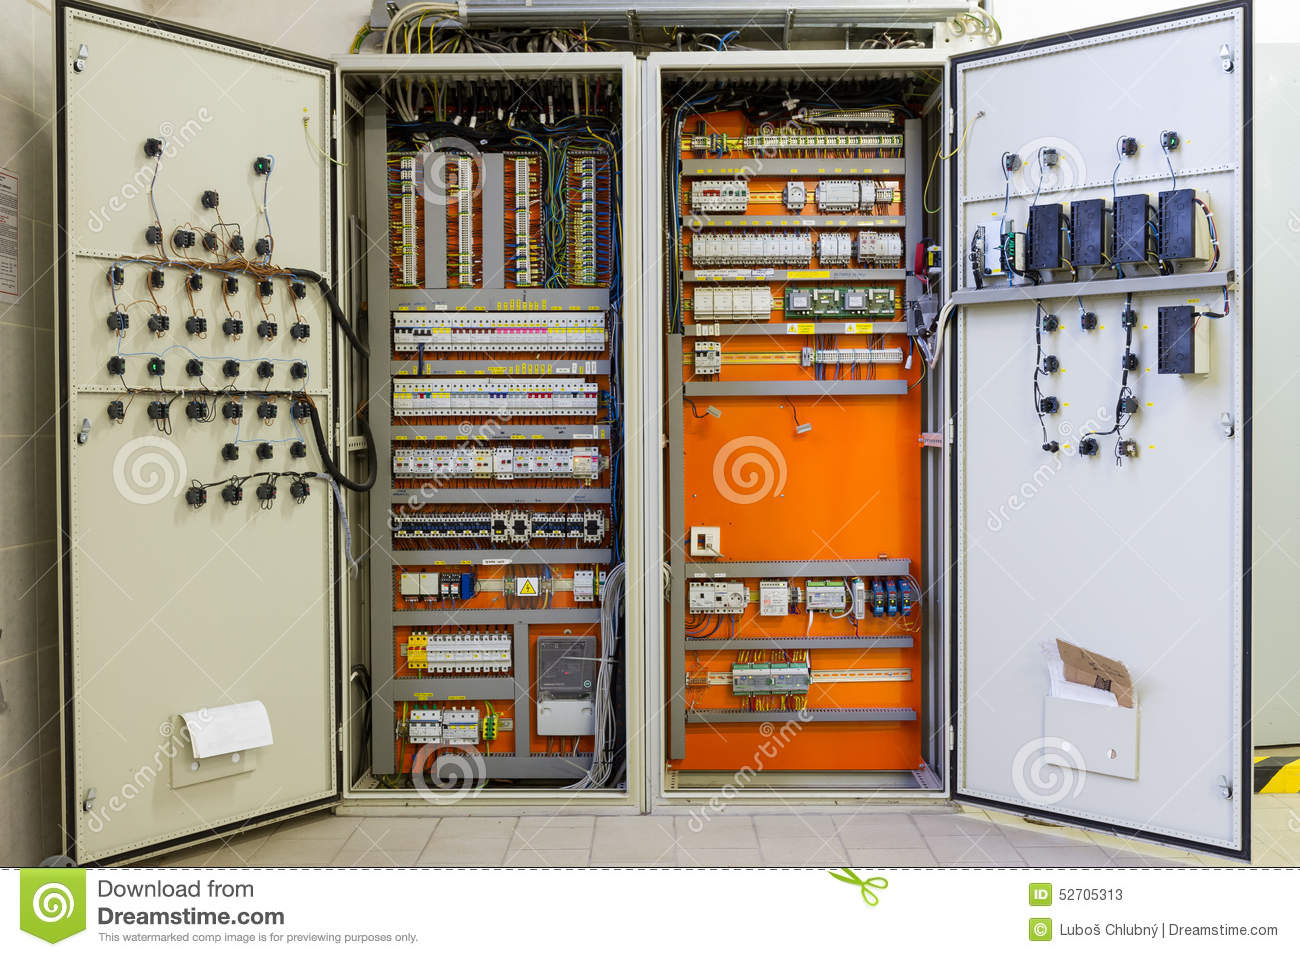 Buss Fuse Box Industrial Wiring Diagram Schemes Electricity Distribution With Wires Circuit Breakers And Fu Rh Dreamstime Com Grainger Guide